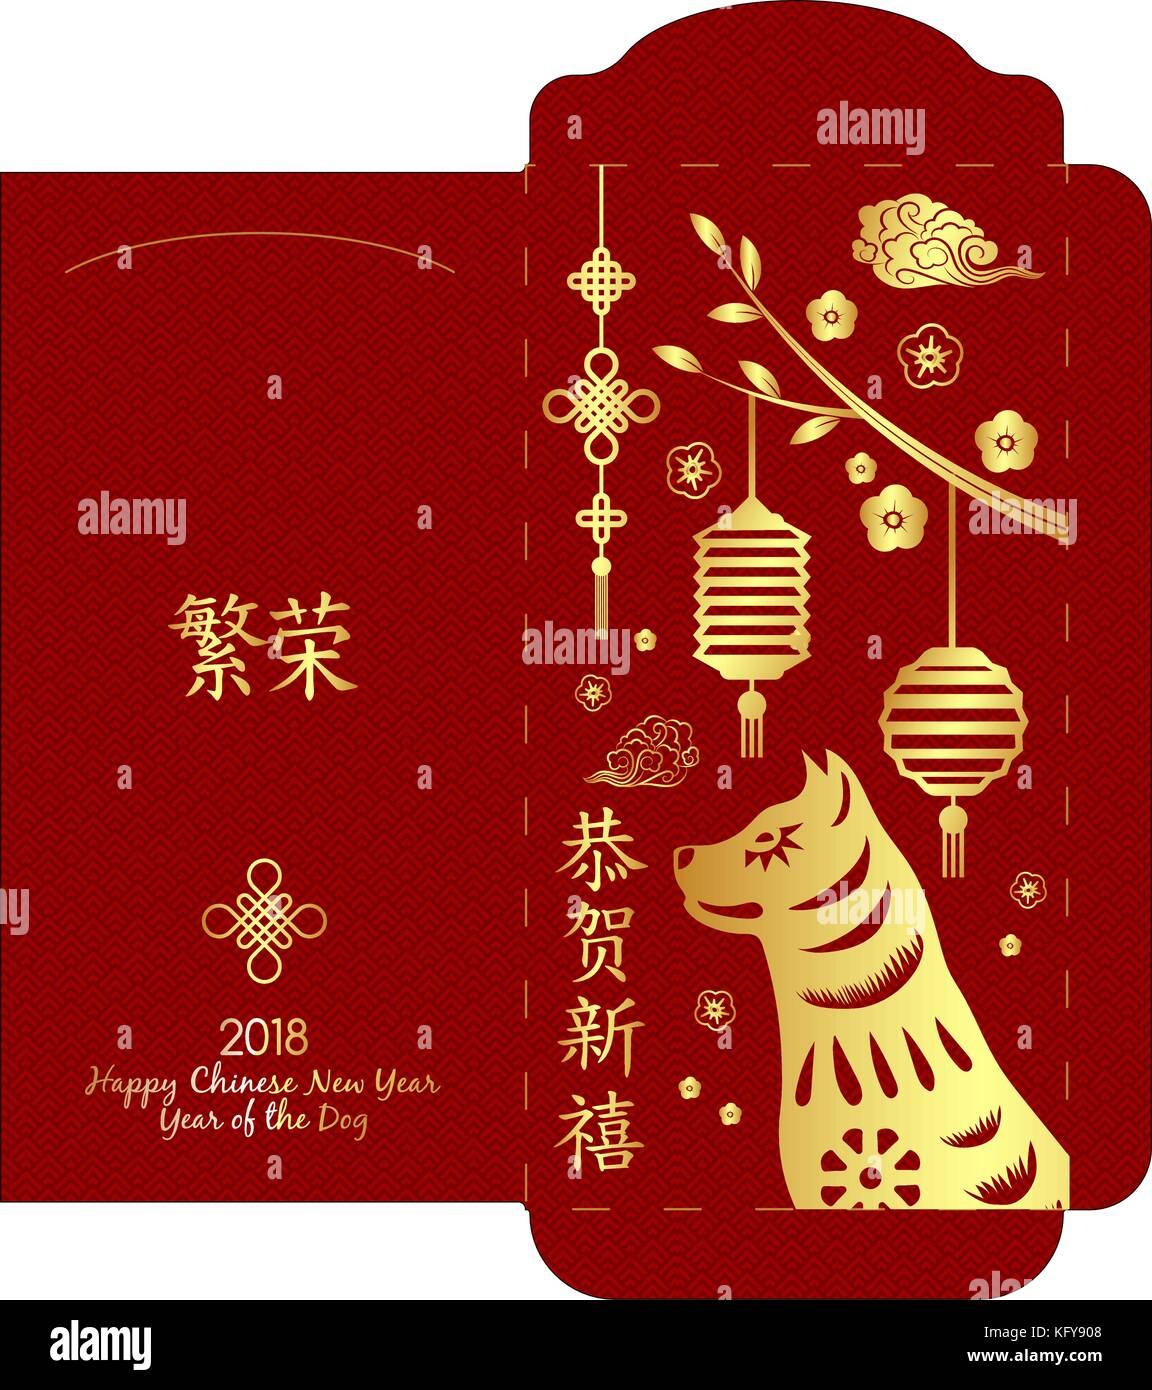 chinese new year money red packet red envelope - Chinese New Year Red Envelope